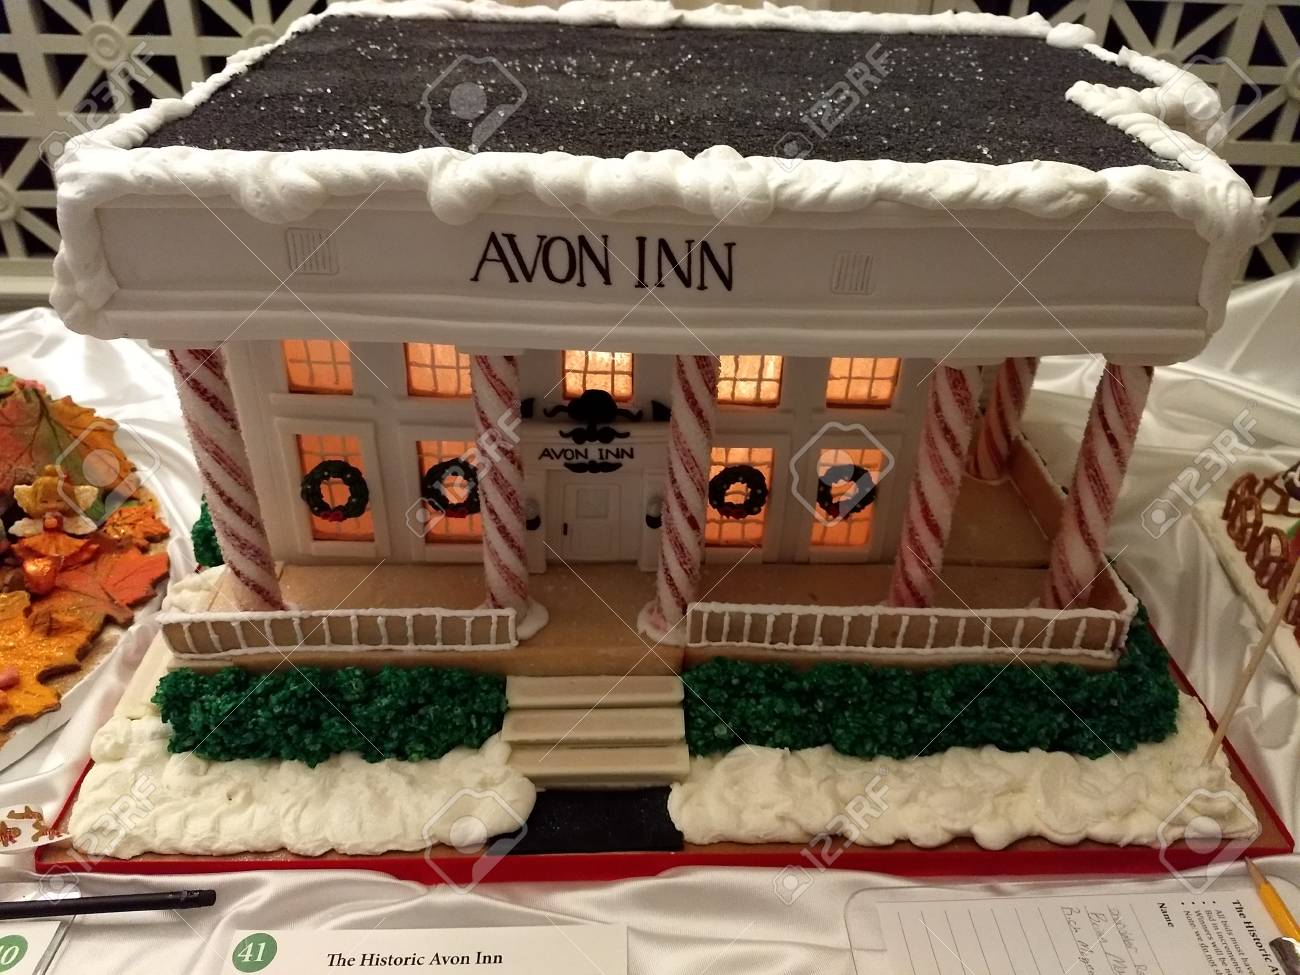 Editorial - November 14, 2017 - Rochester, NY - George Eastman Museum - gingerbread house exhibit Stock Photo - 90126992